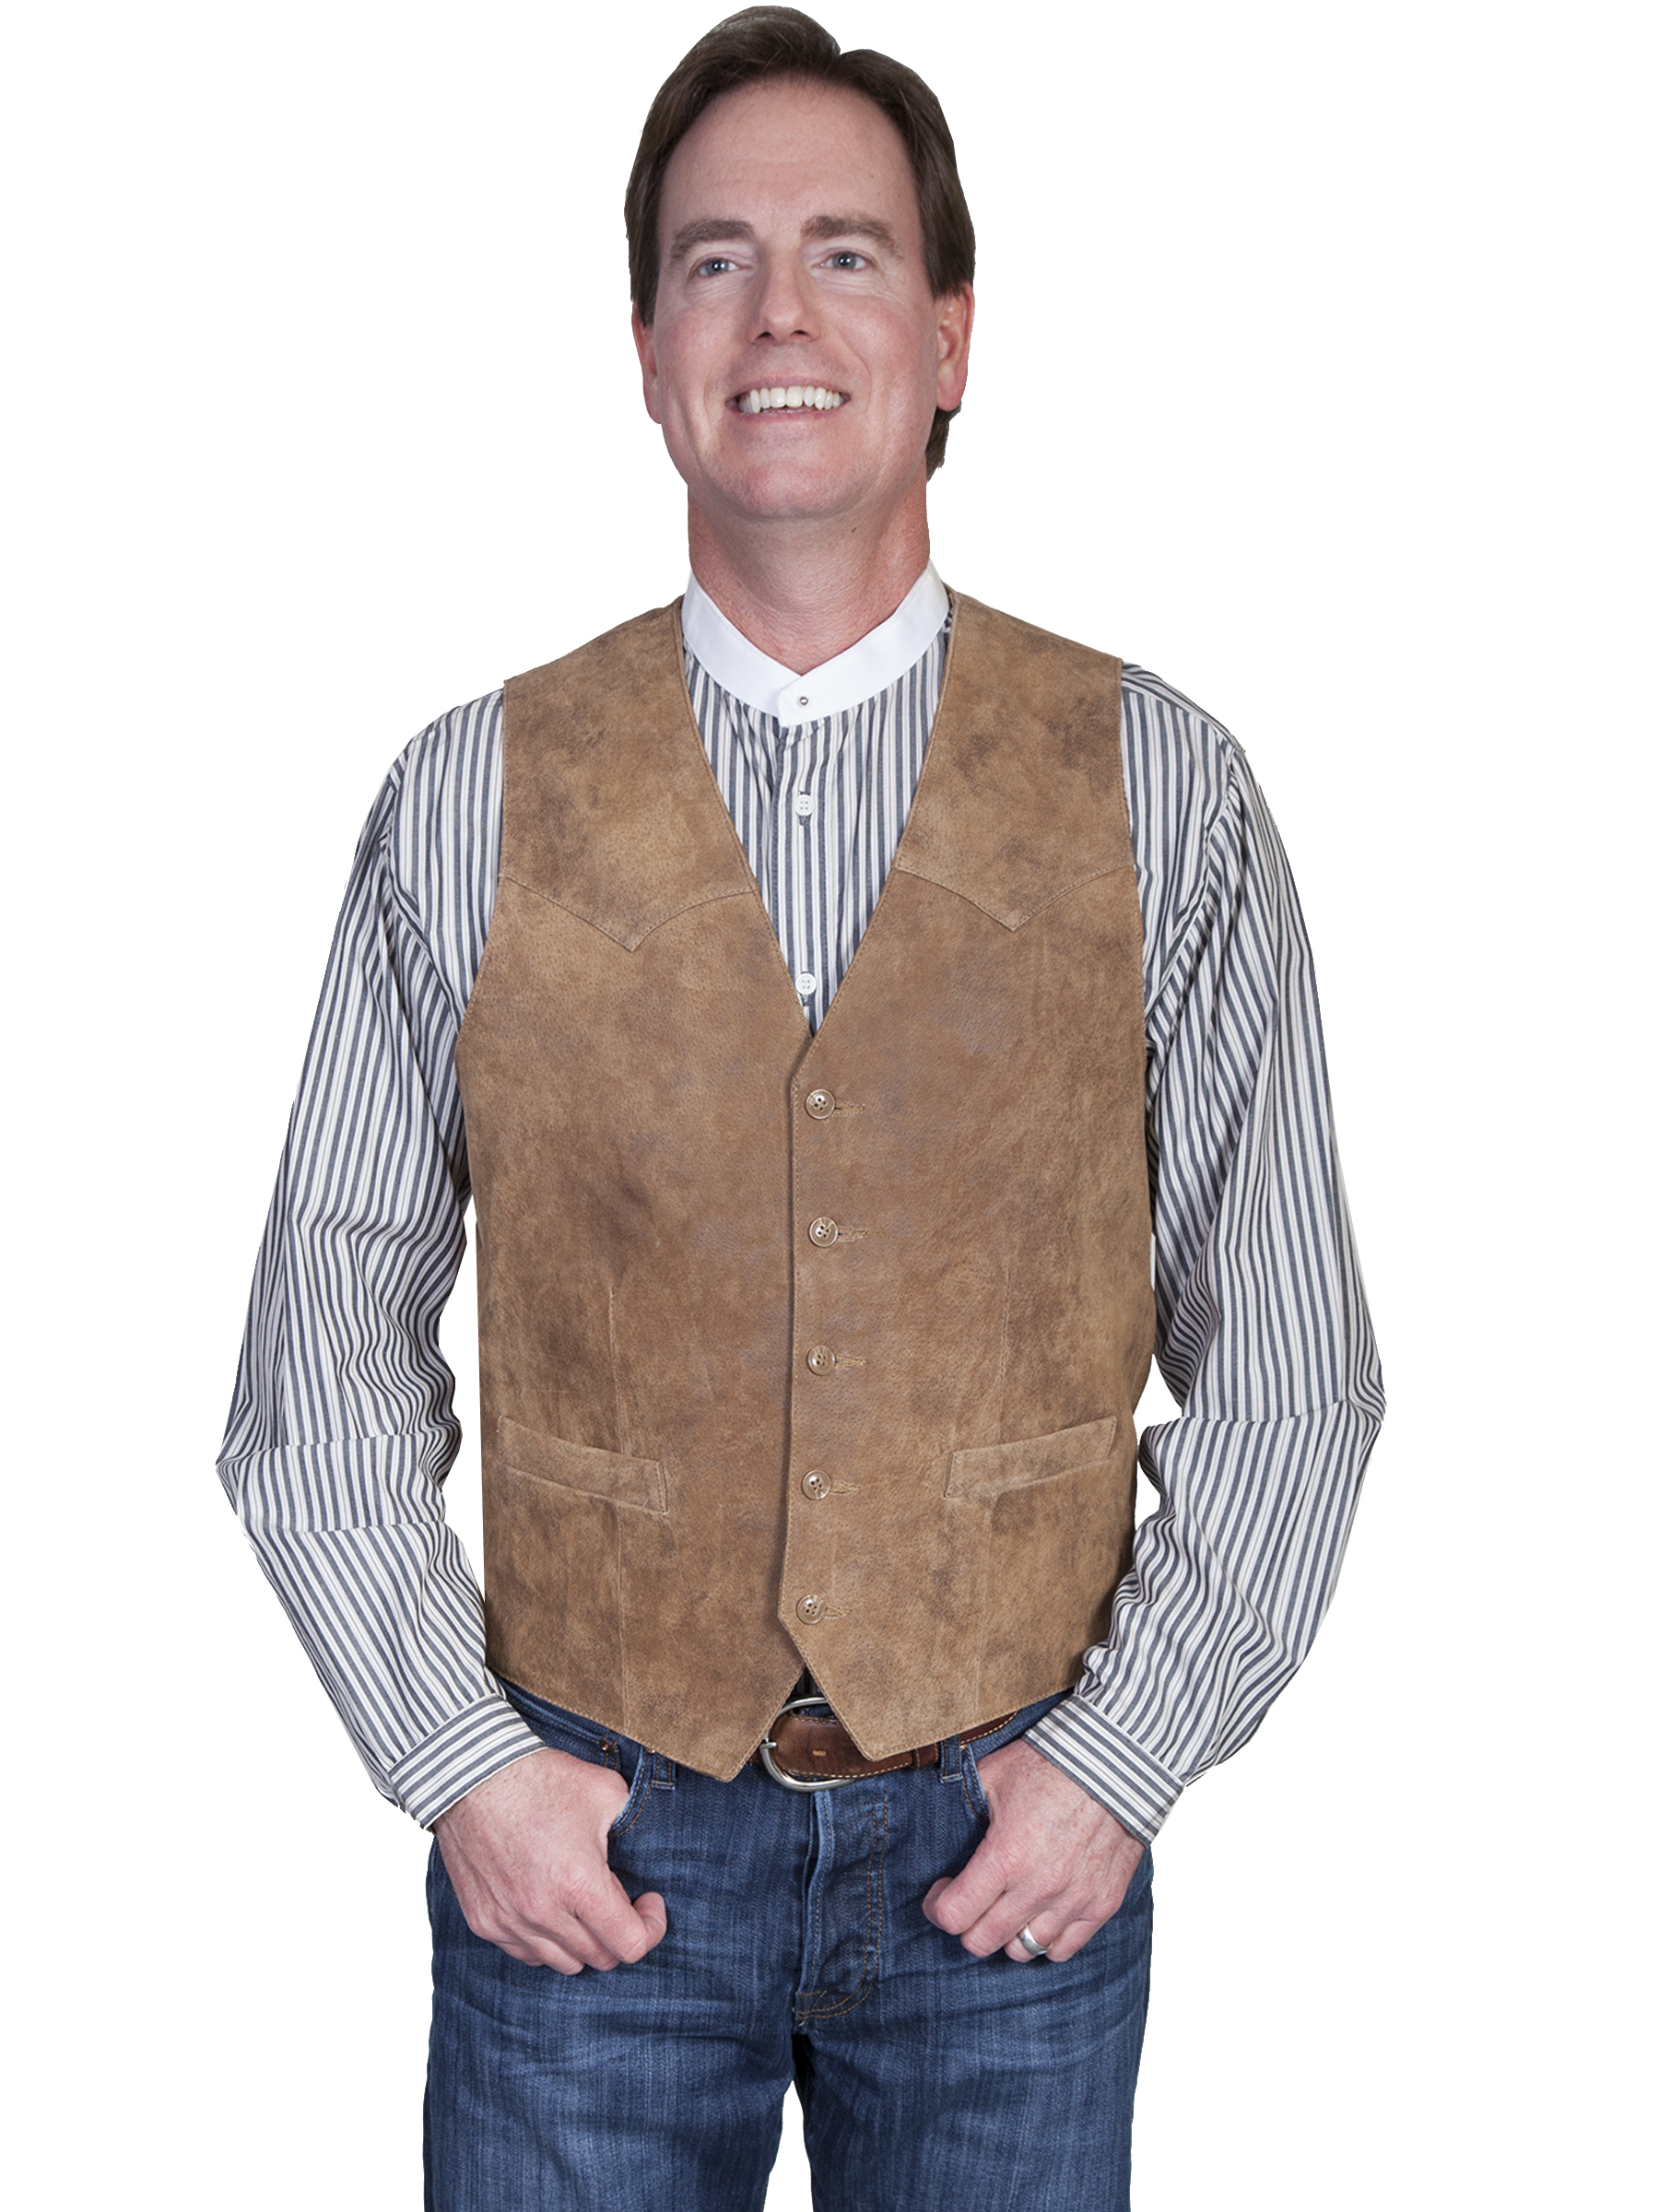 """single men in point lay Hps = high point shoulder introduction  206 neck circumferenceclose neckline and lay  """"how to measure"""" tanks/vests - men's/women's."""